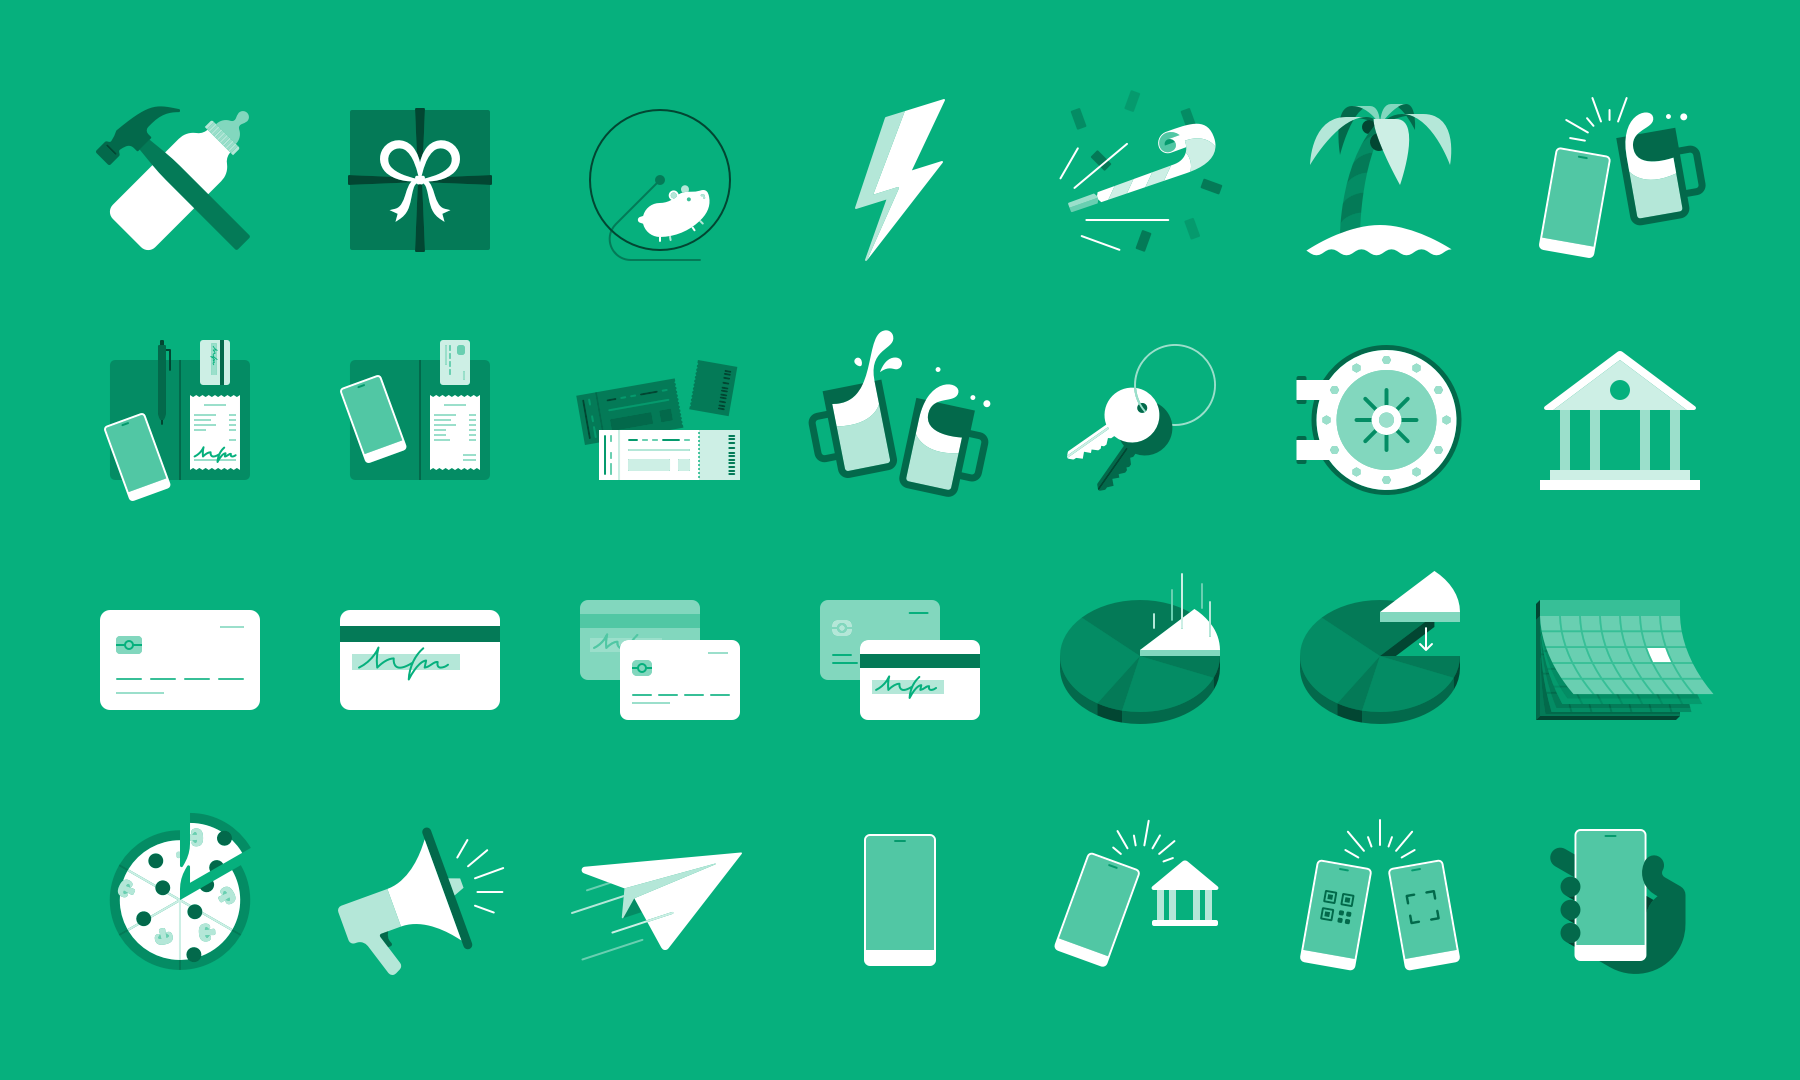 Illustrated icons - tonal.png